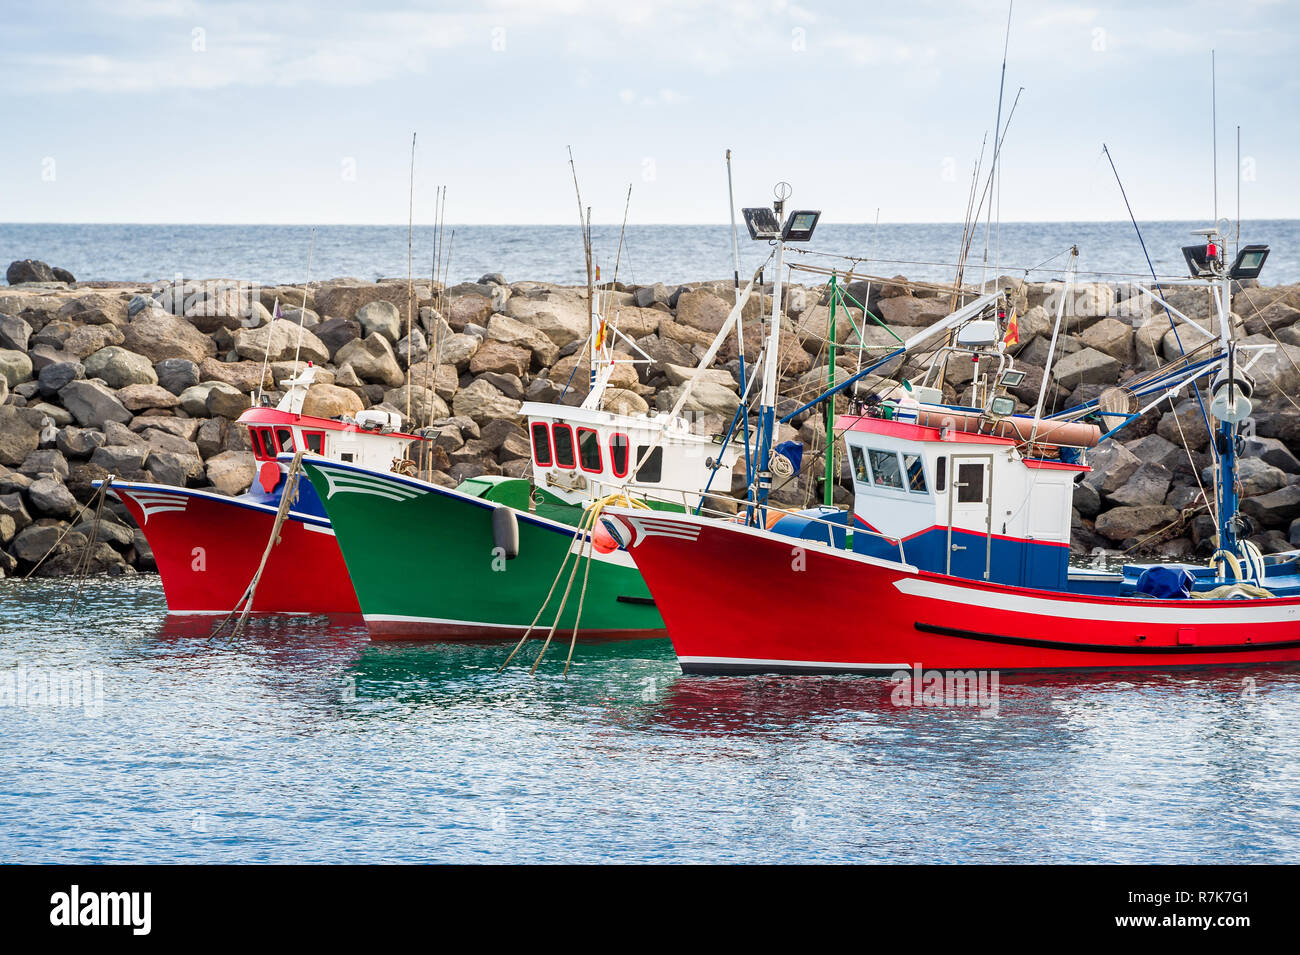 Colorful fishing boats at Canary islands. - Stock Image